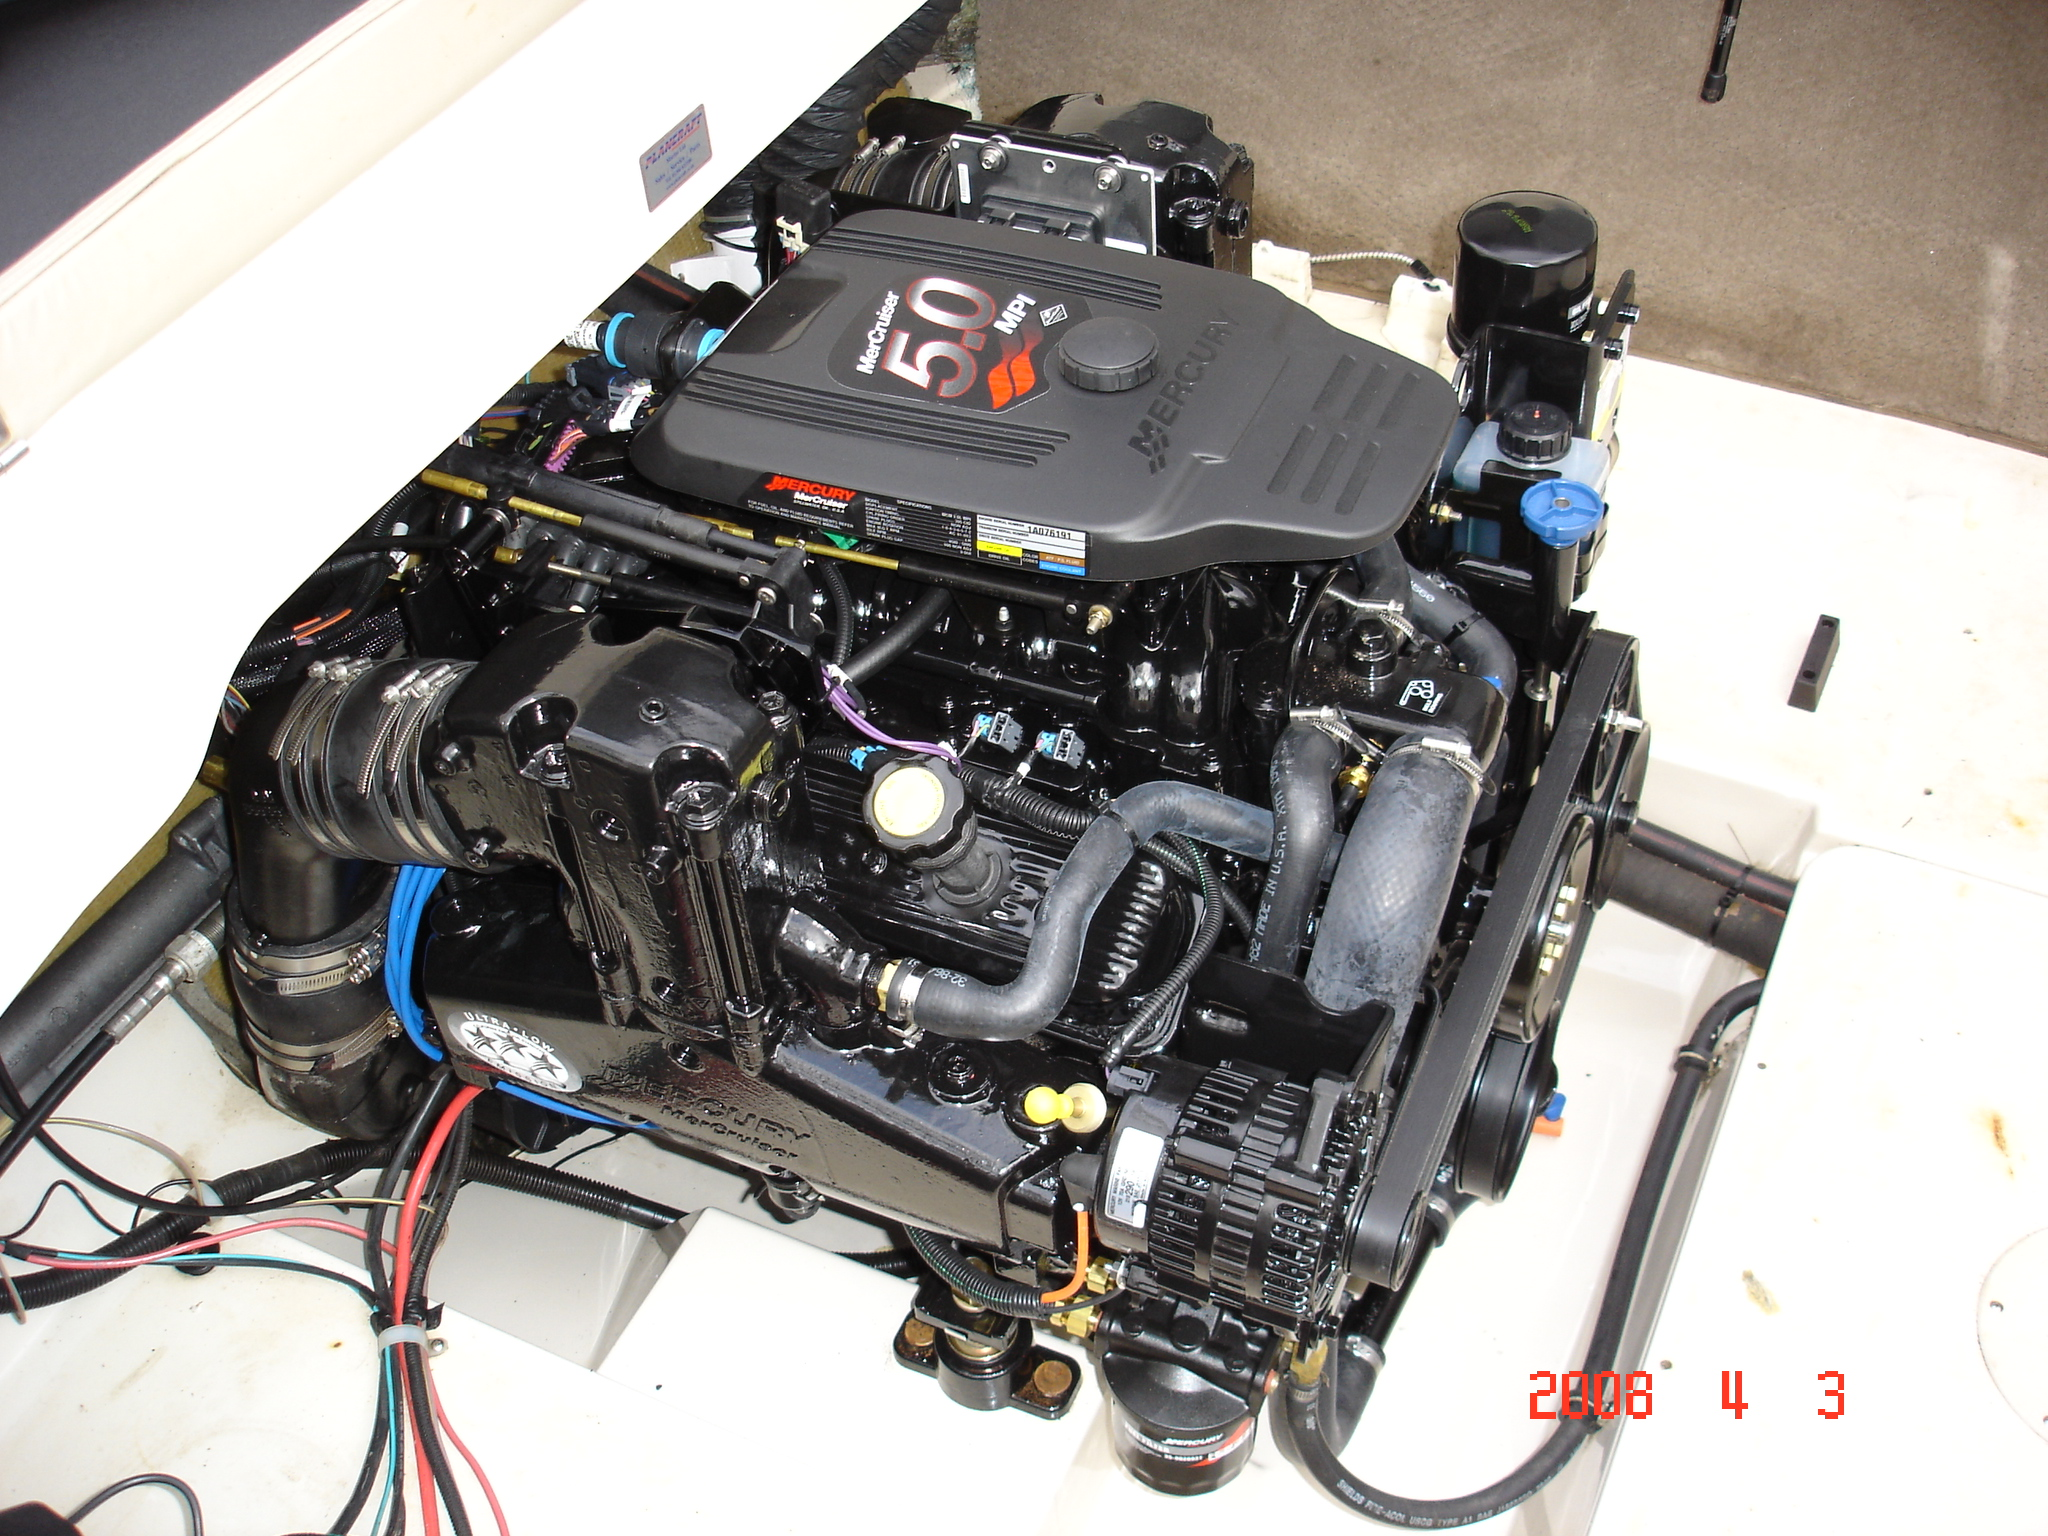 Mercruiser 350 Mag Wiring Diagram Library Mercury Engine 6 2 Mpi Get Free Image About 2000